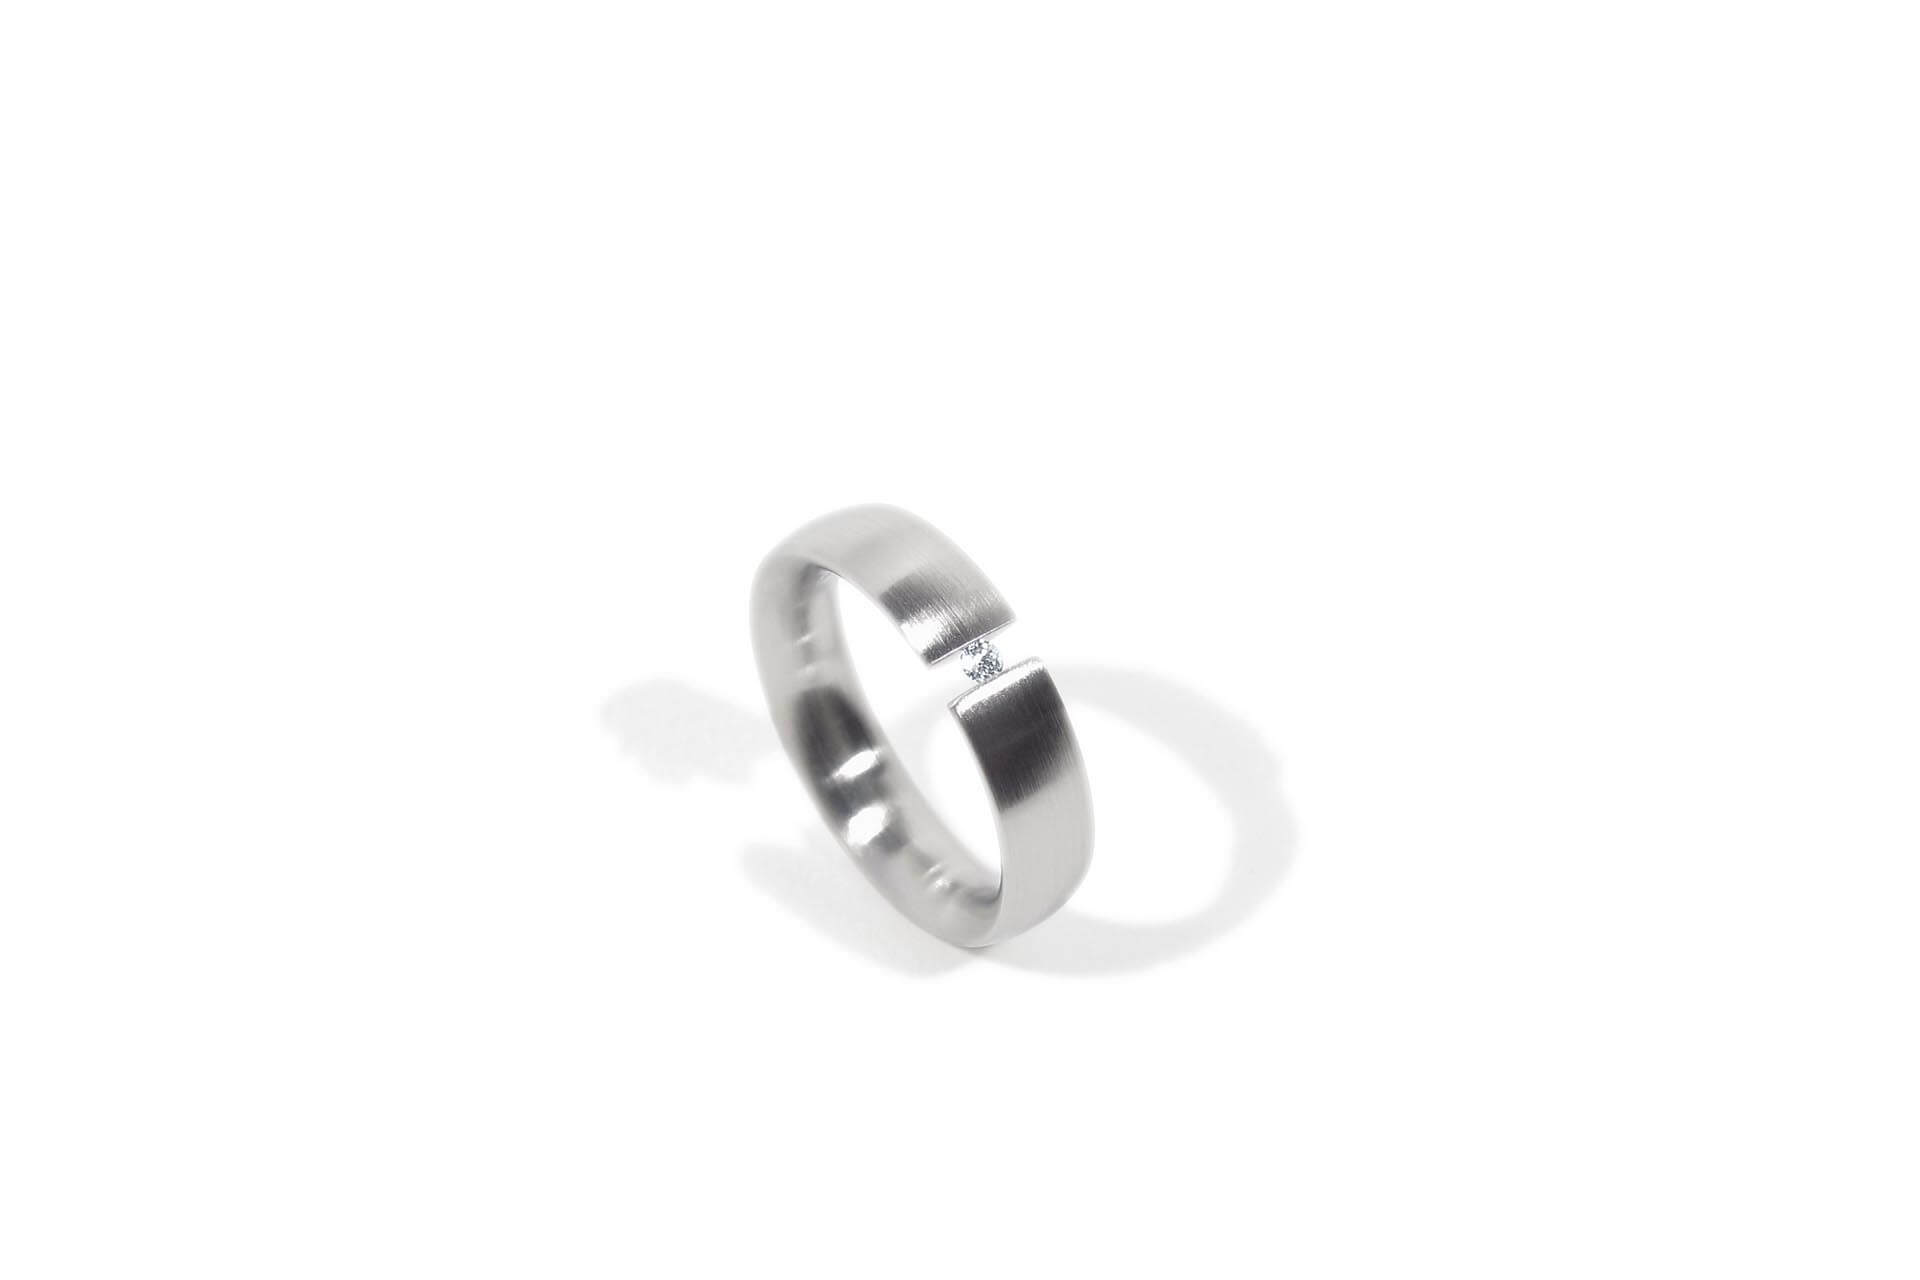 Stainless steel oval ring with a diamond. Top view of ring.